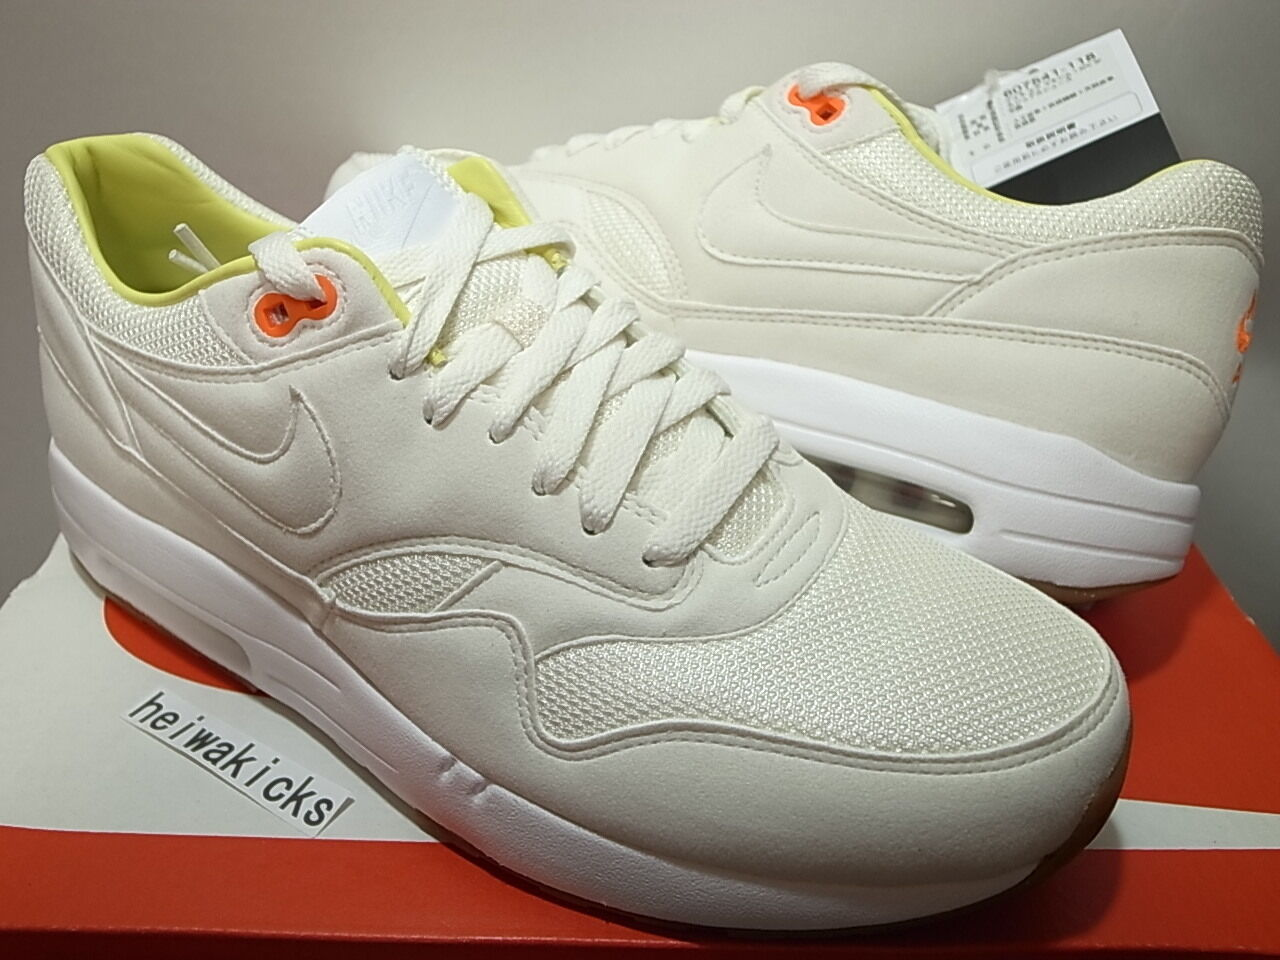 reputable site becb1 e3ad5 85%OFF 2013 A.P.C. x NIKE AIR MAXIM 1 APC SP White/White-Total ...